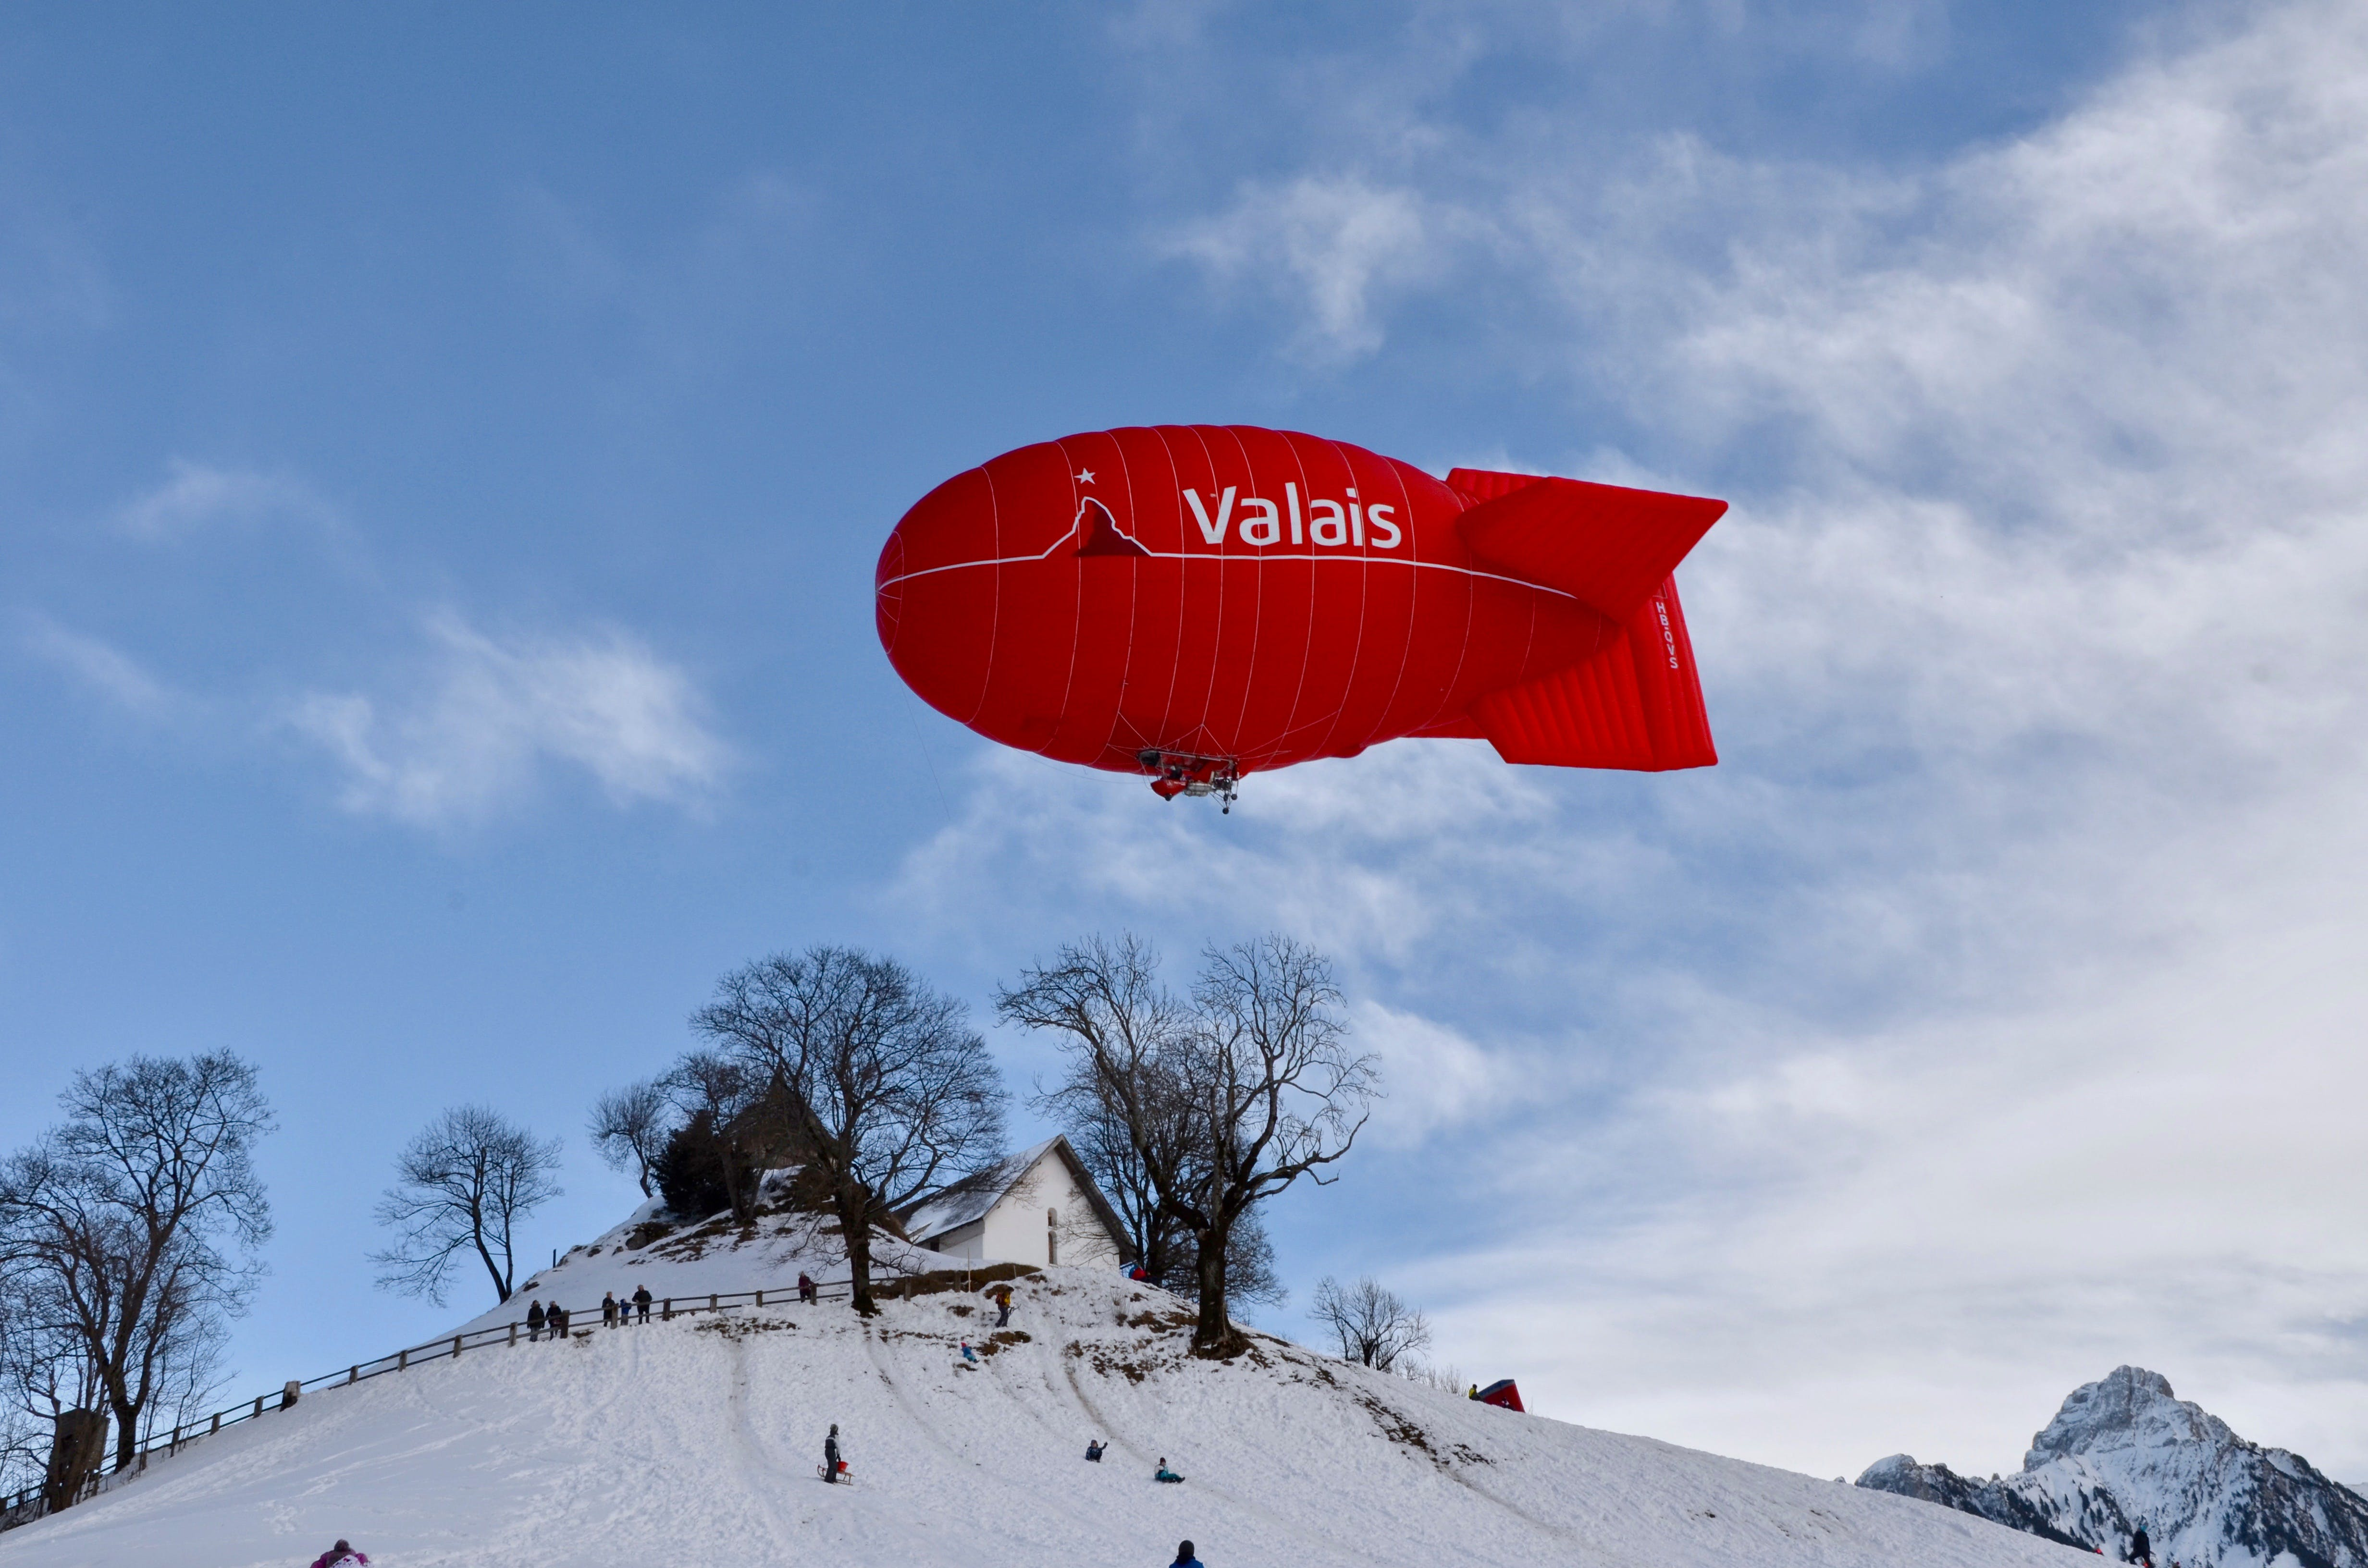 Red Valais Blimp Above White Wooden House